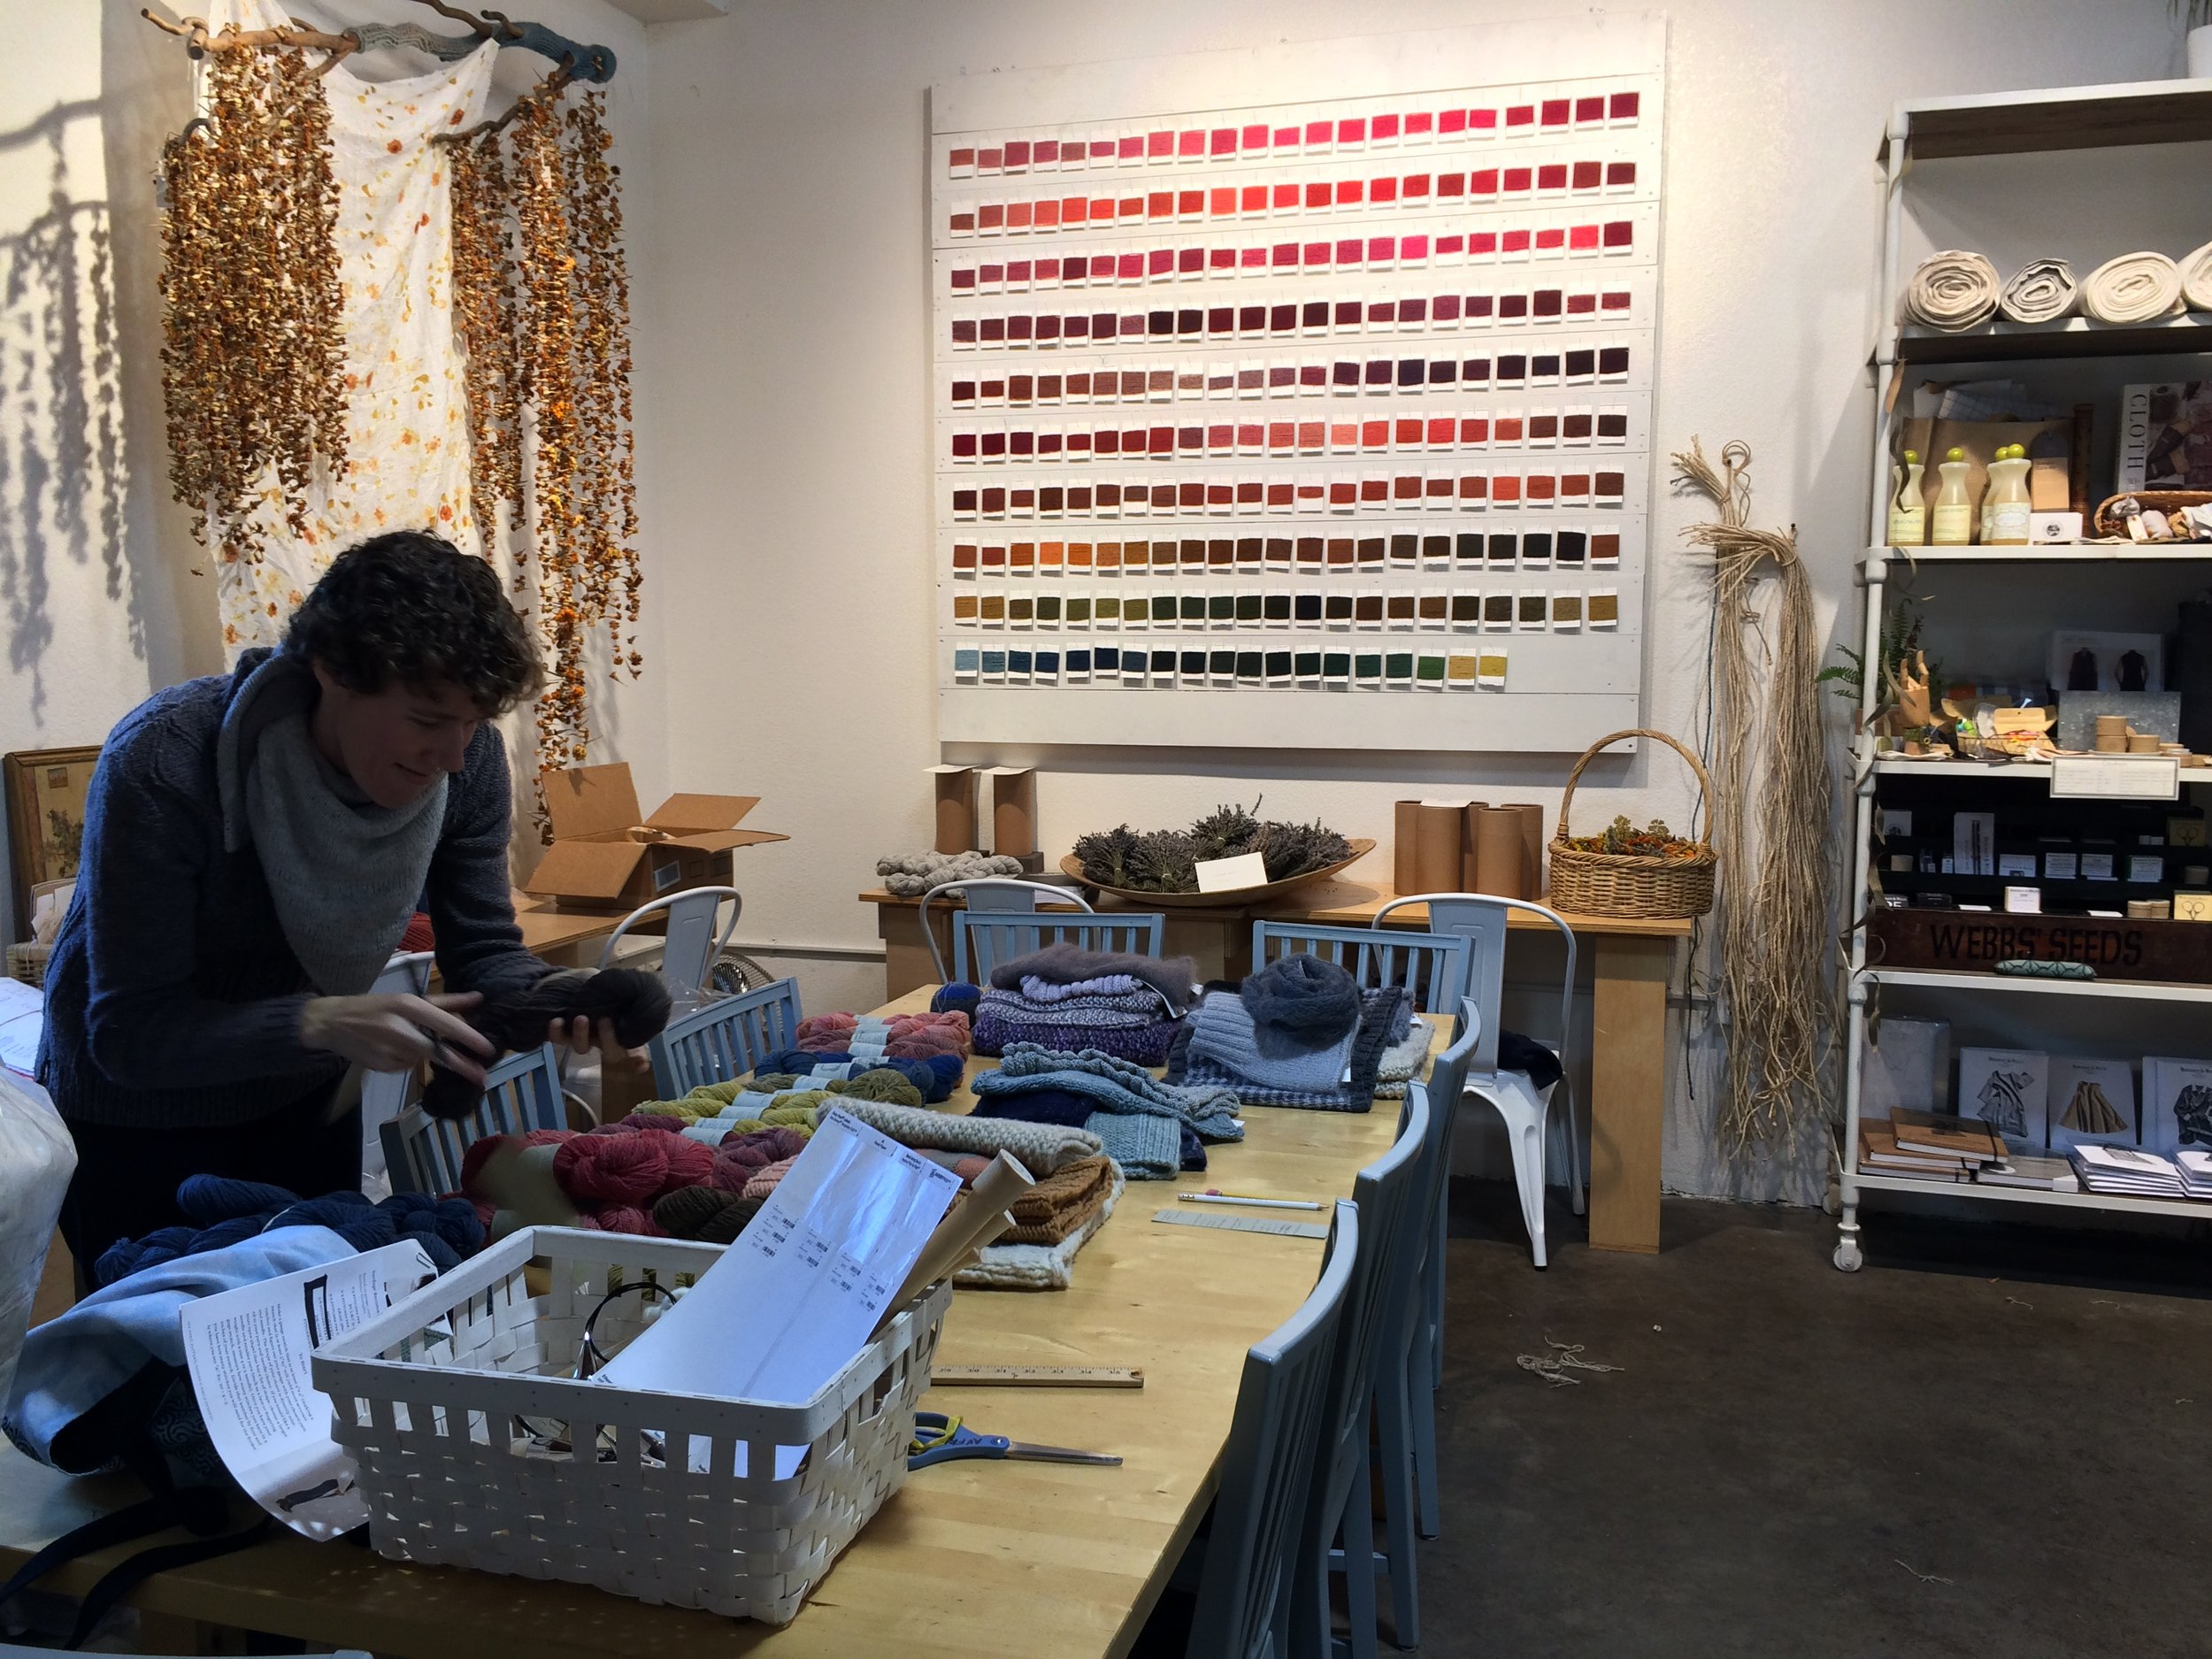 A long table hosts classes in natural dyeing, knitting, sewing, spinning, and weaving, surrounded by natural dye shade cards, lavender, and whole dyestuffs